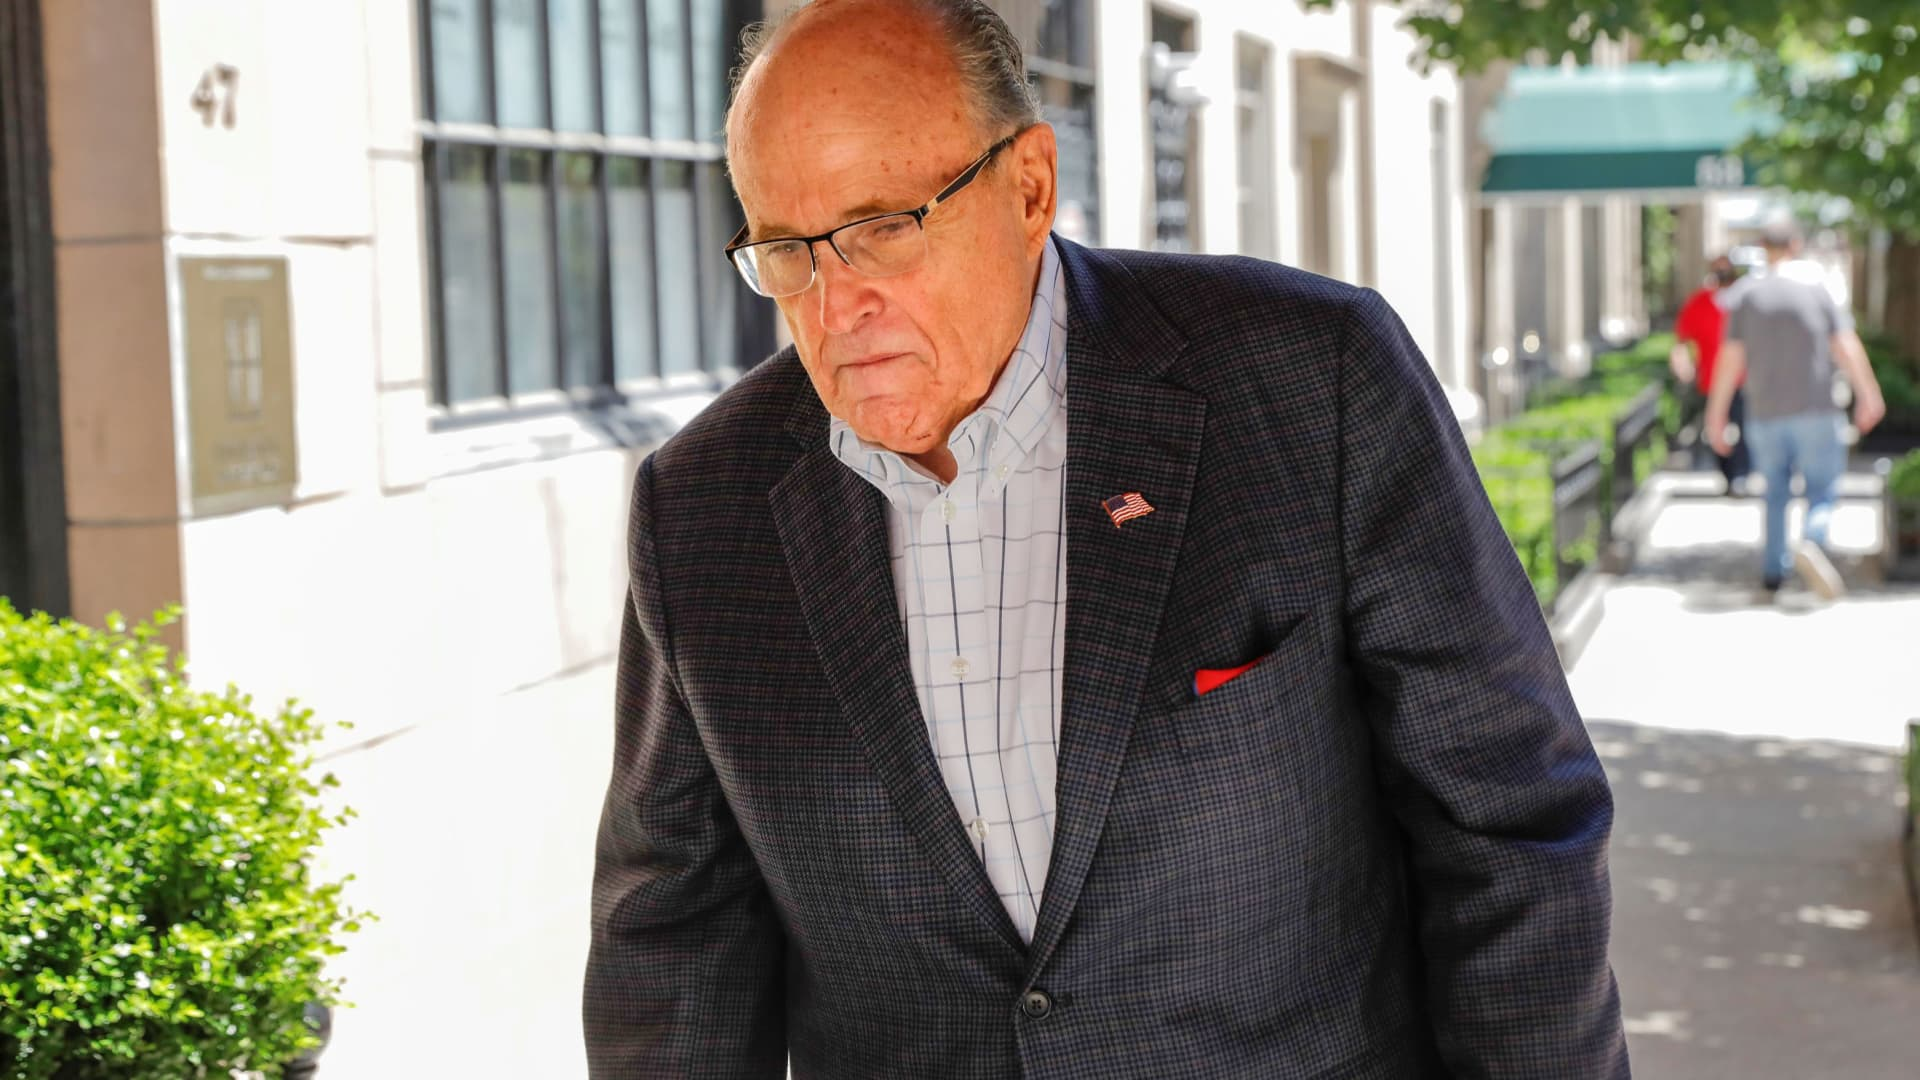 Former New York City Mayor Rudy Giuliani arrives at his apartment building after the suspension of his law license in Manhattan in New York City, New York, June 24, 2021.